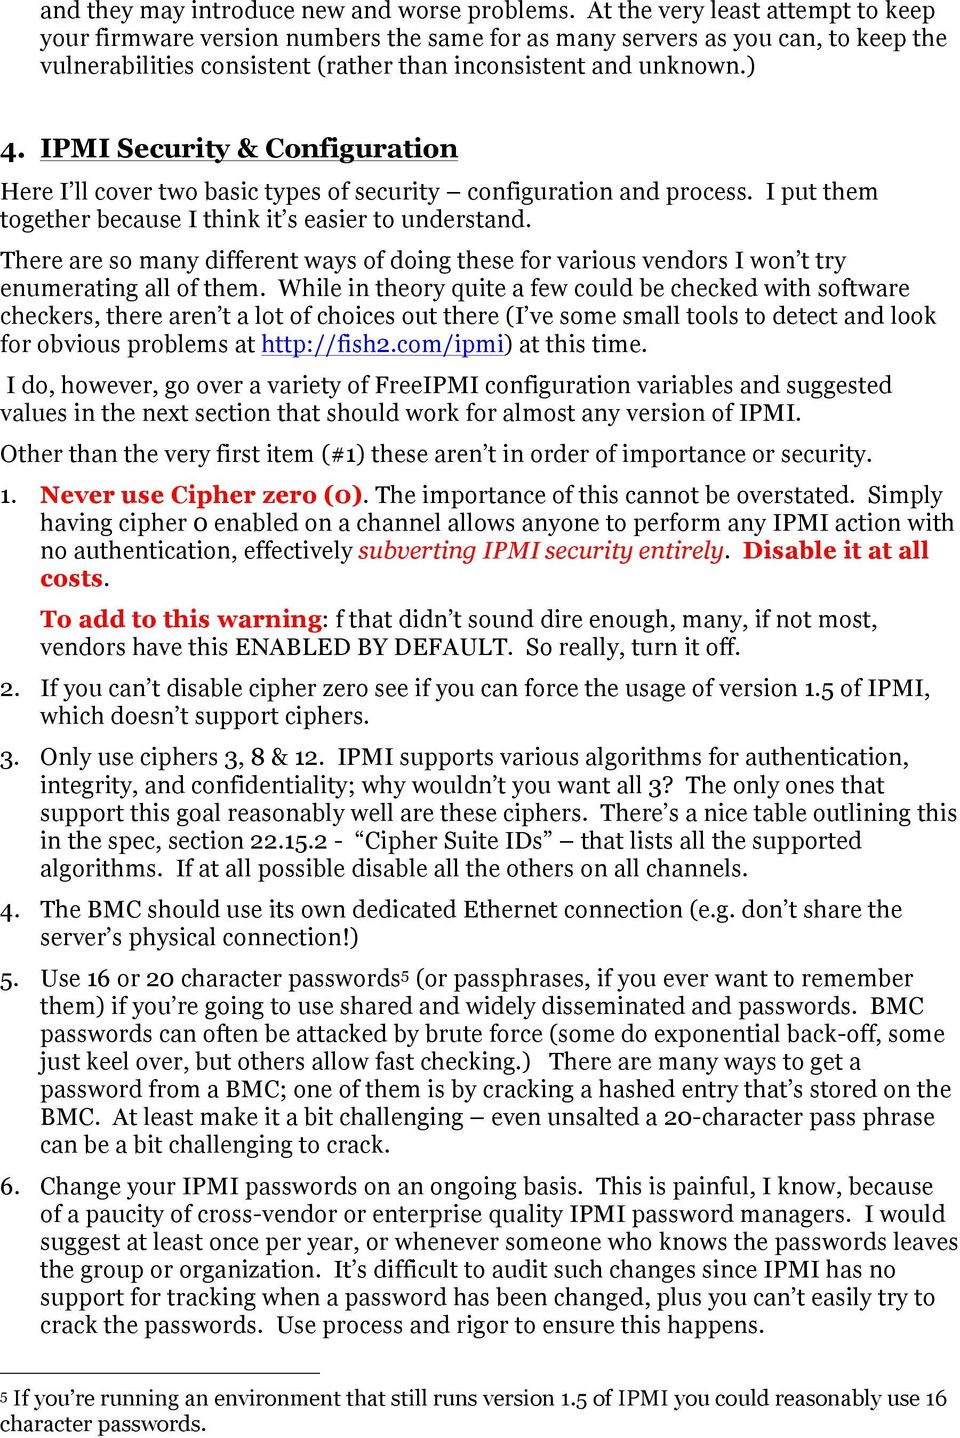 IPMI++ Security Best Practices - PDF